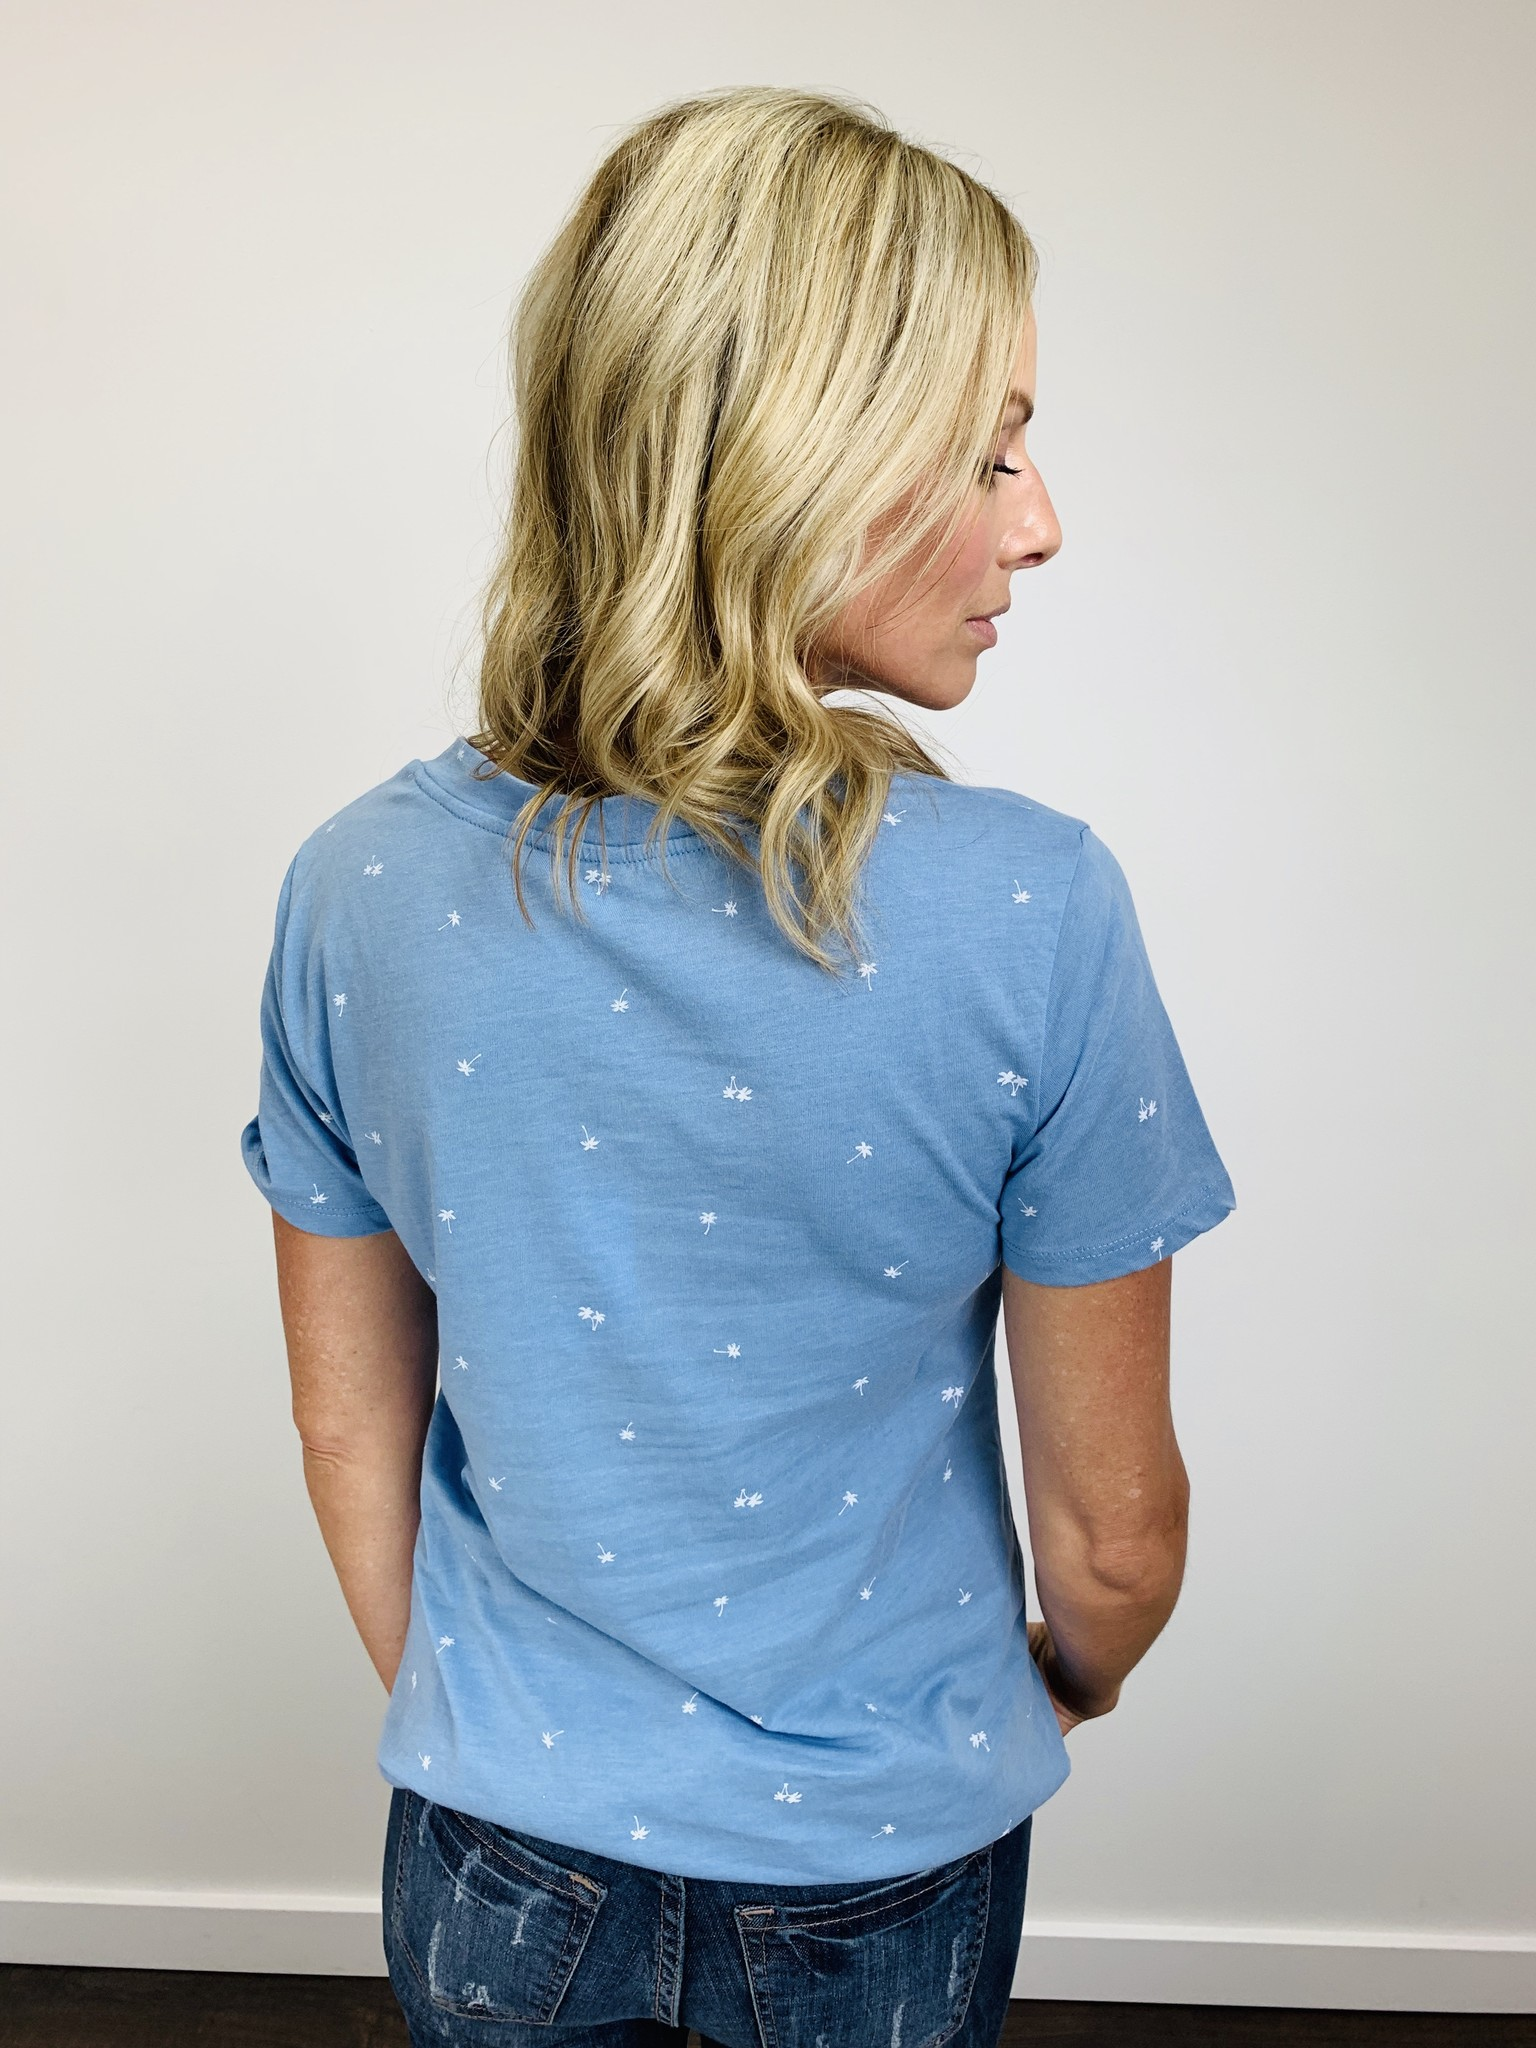 ZSupply The Mini Palm Pocket Tee in Allure Blue